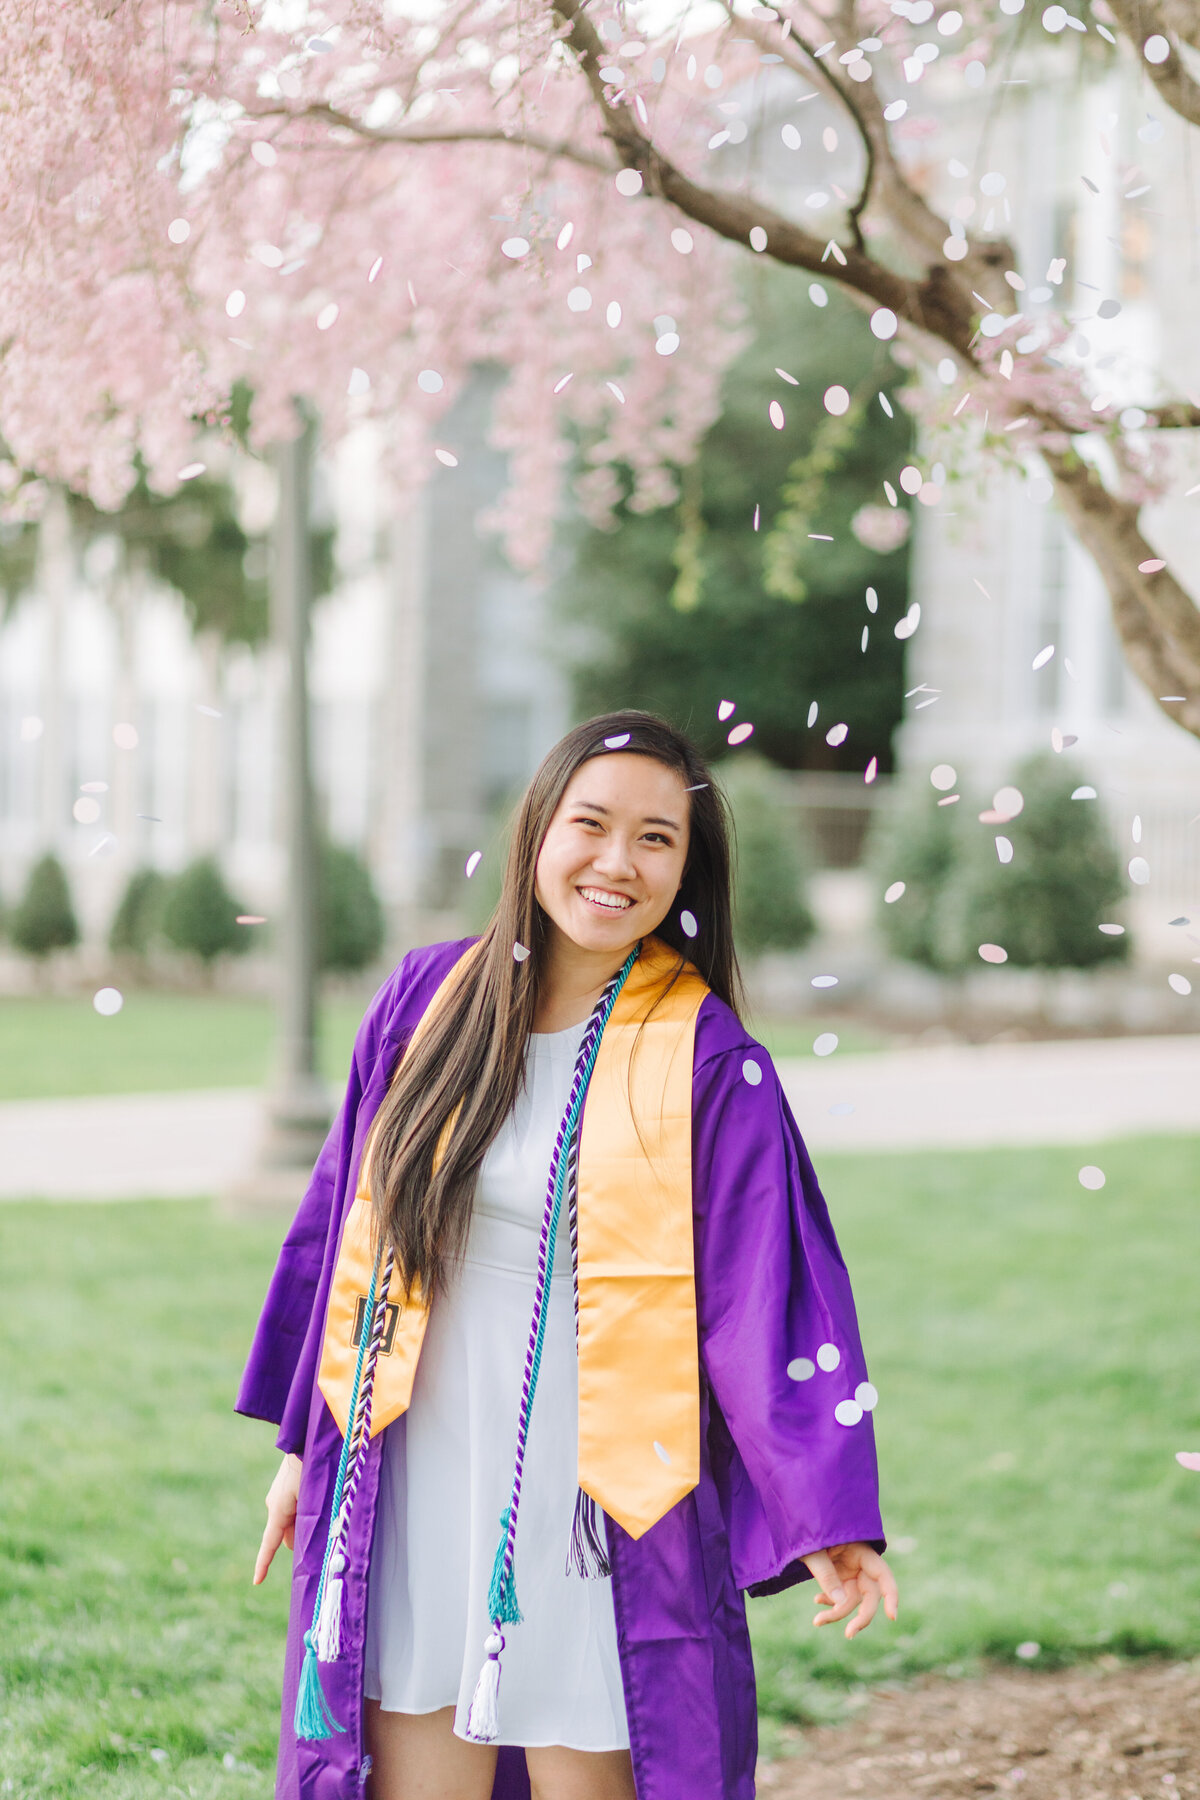 BeckyChen_AngelikaJohnsPhotography_JMU_JamesMadisonUniversity_GraduationSeniorPhotos-4046